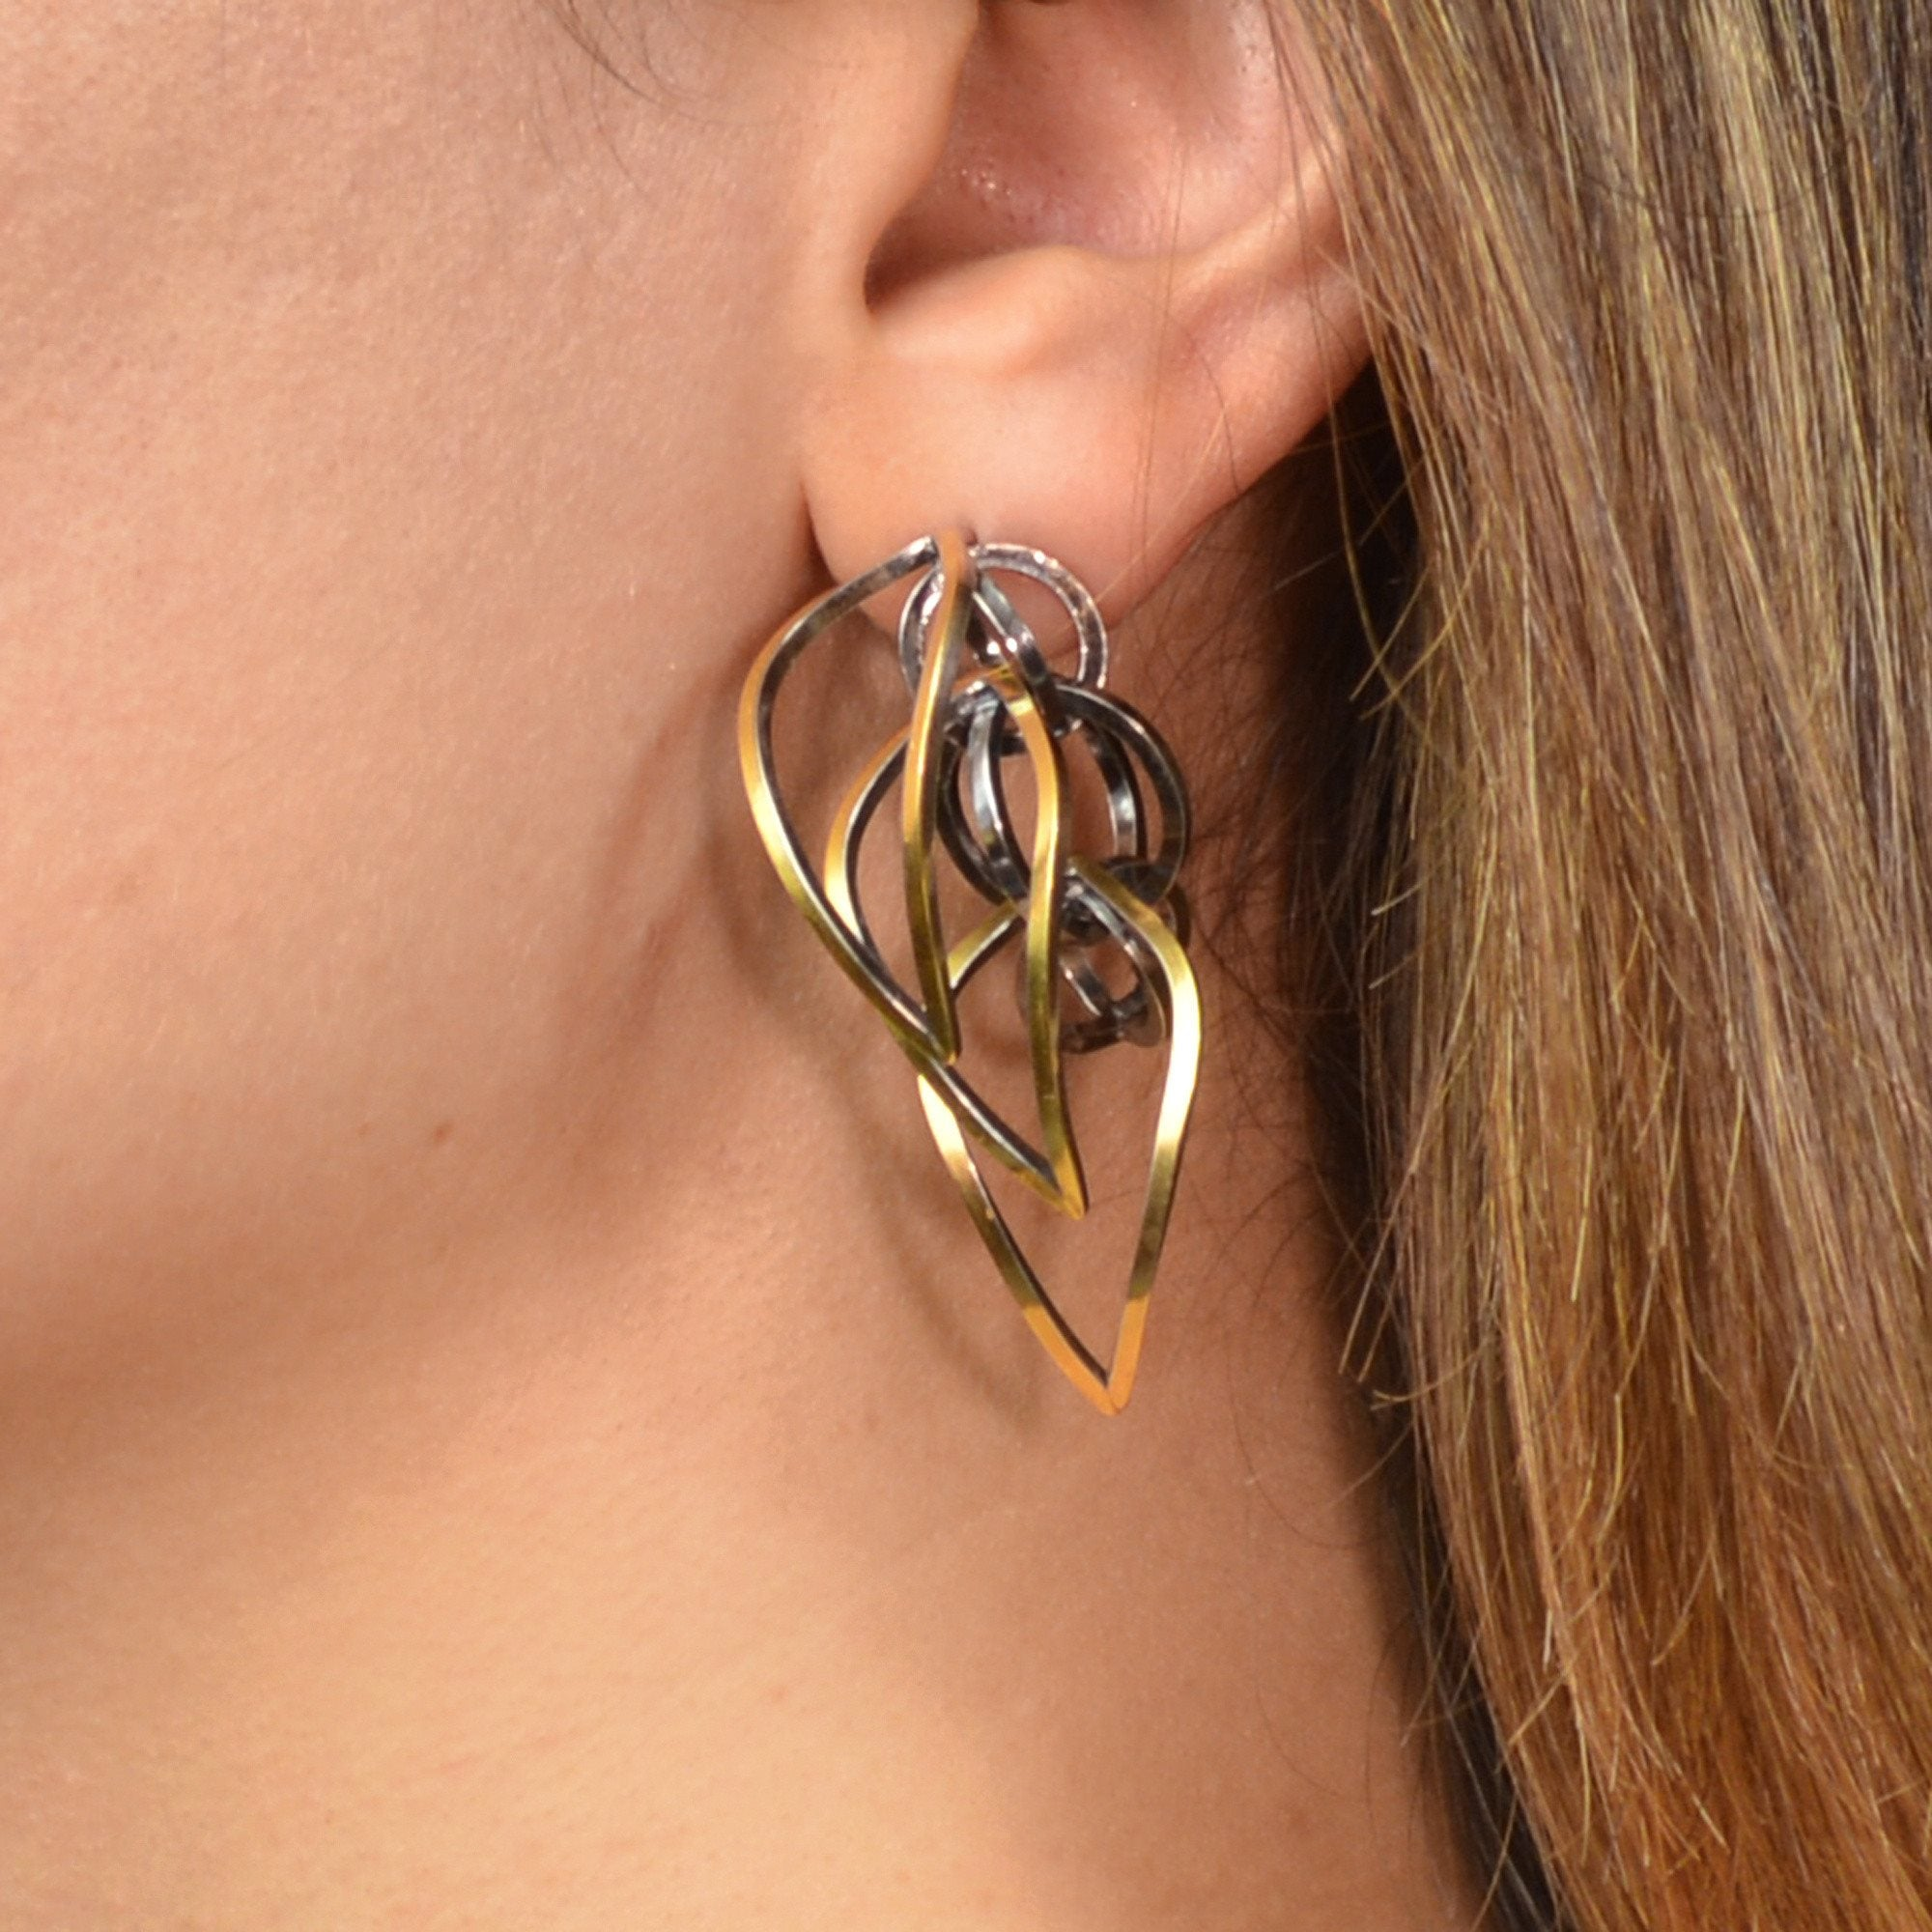 Tighra Earrings in 22k gold and Sterling Silver